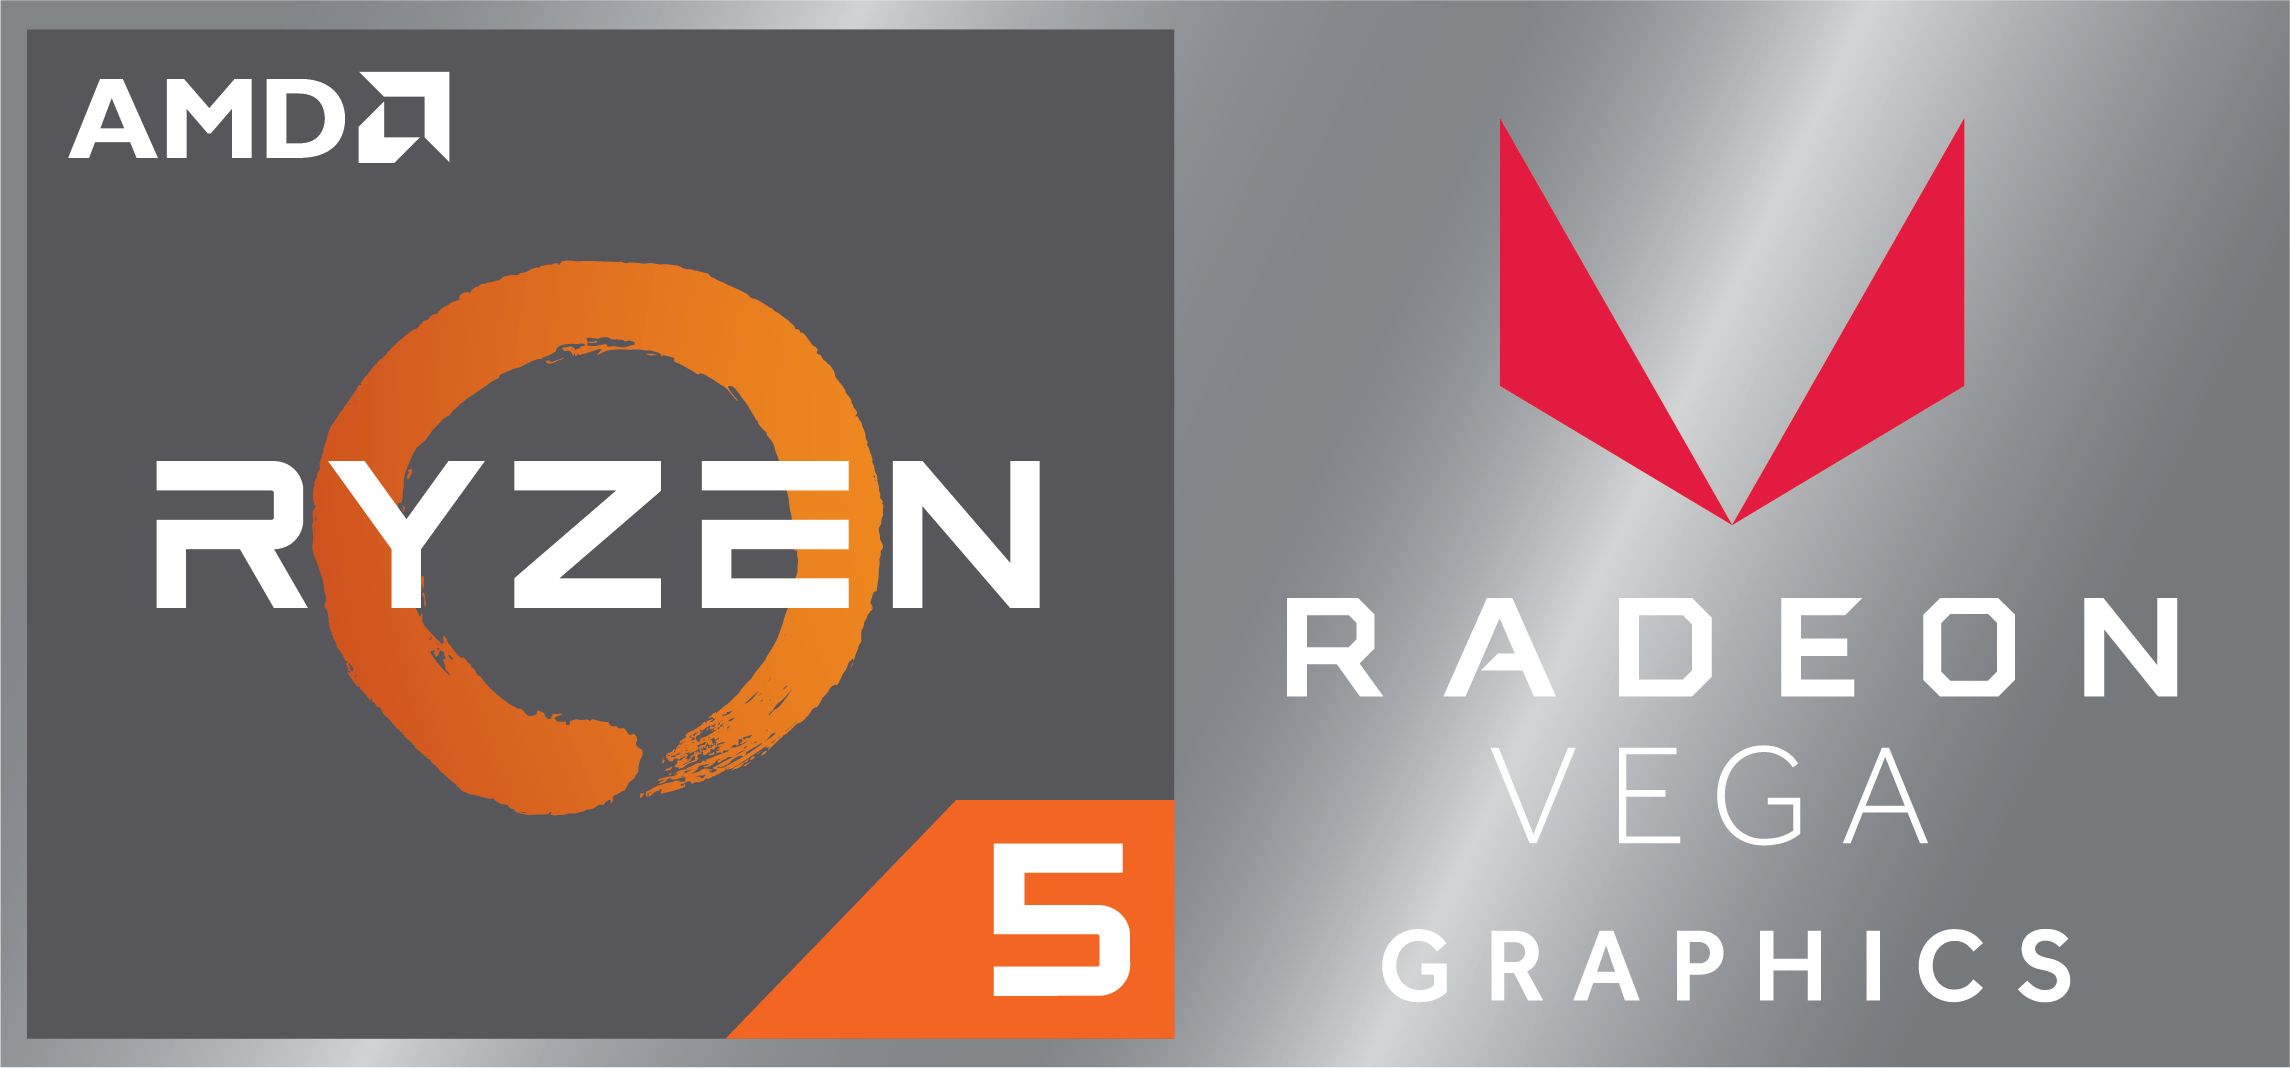 Amd Introduces New Ryzen Mobile Processors The World S Fastest Processor For Ultrathin Notebooks Twenty8two